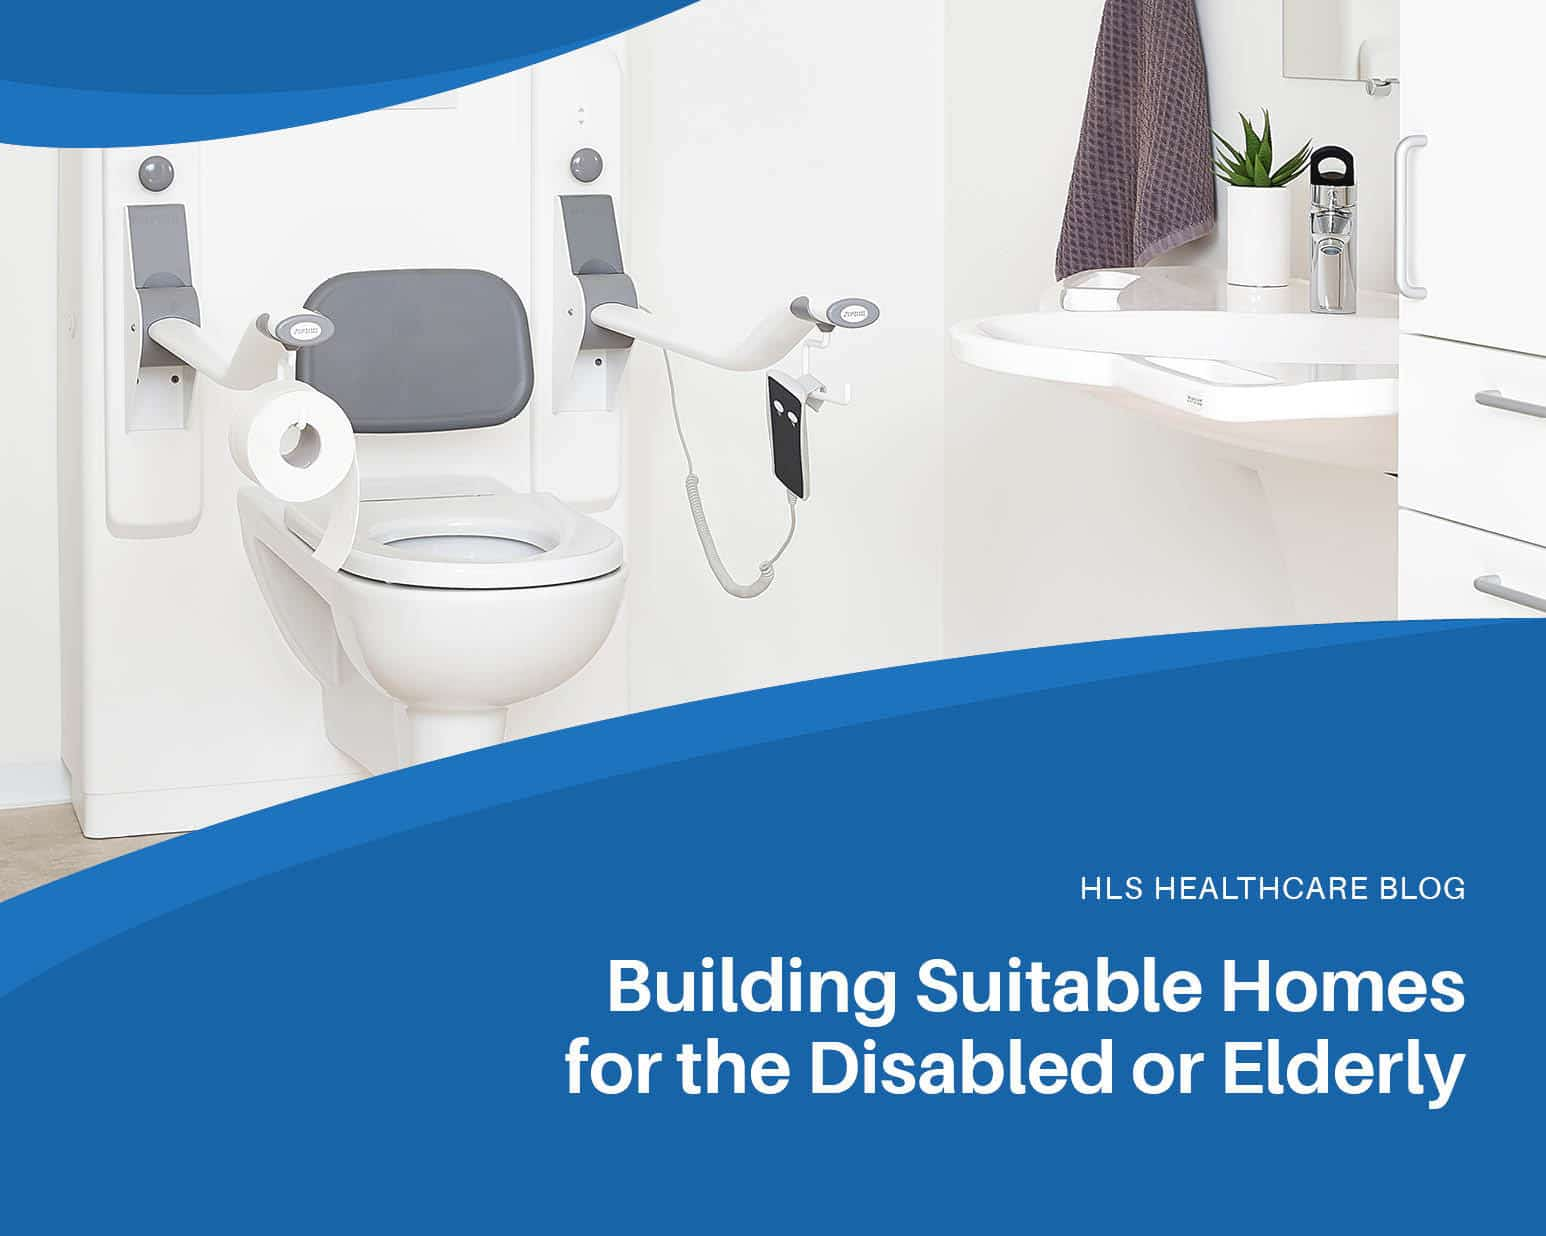 Building Suitable Homes for the Disabled or Elderly